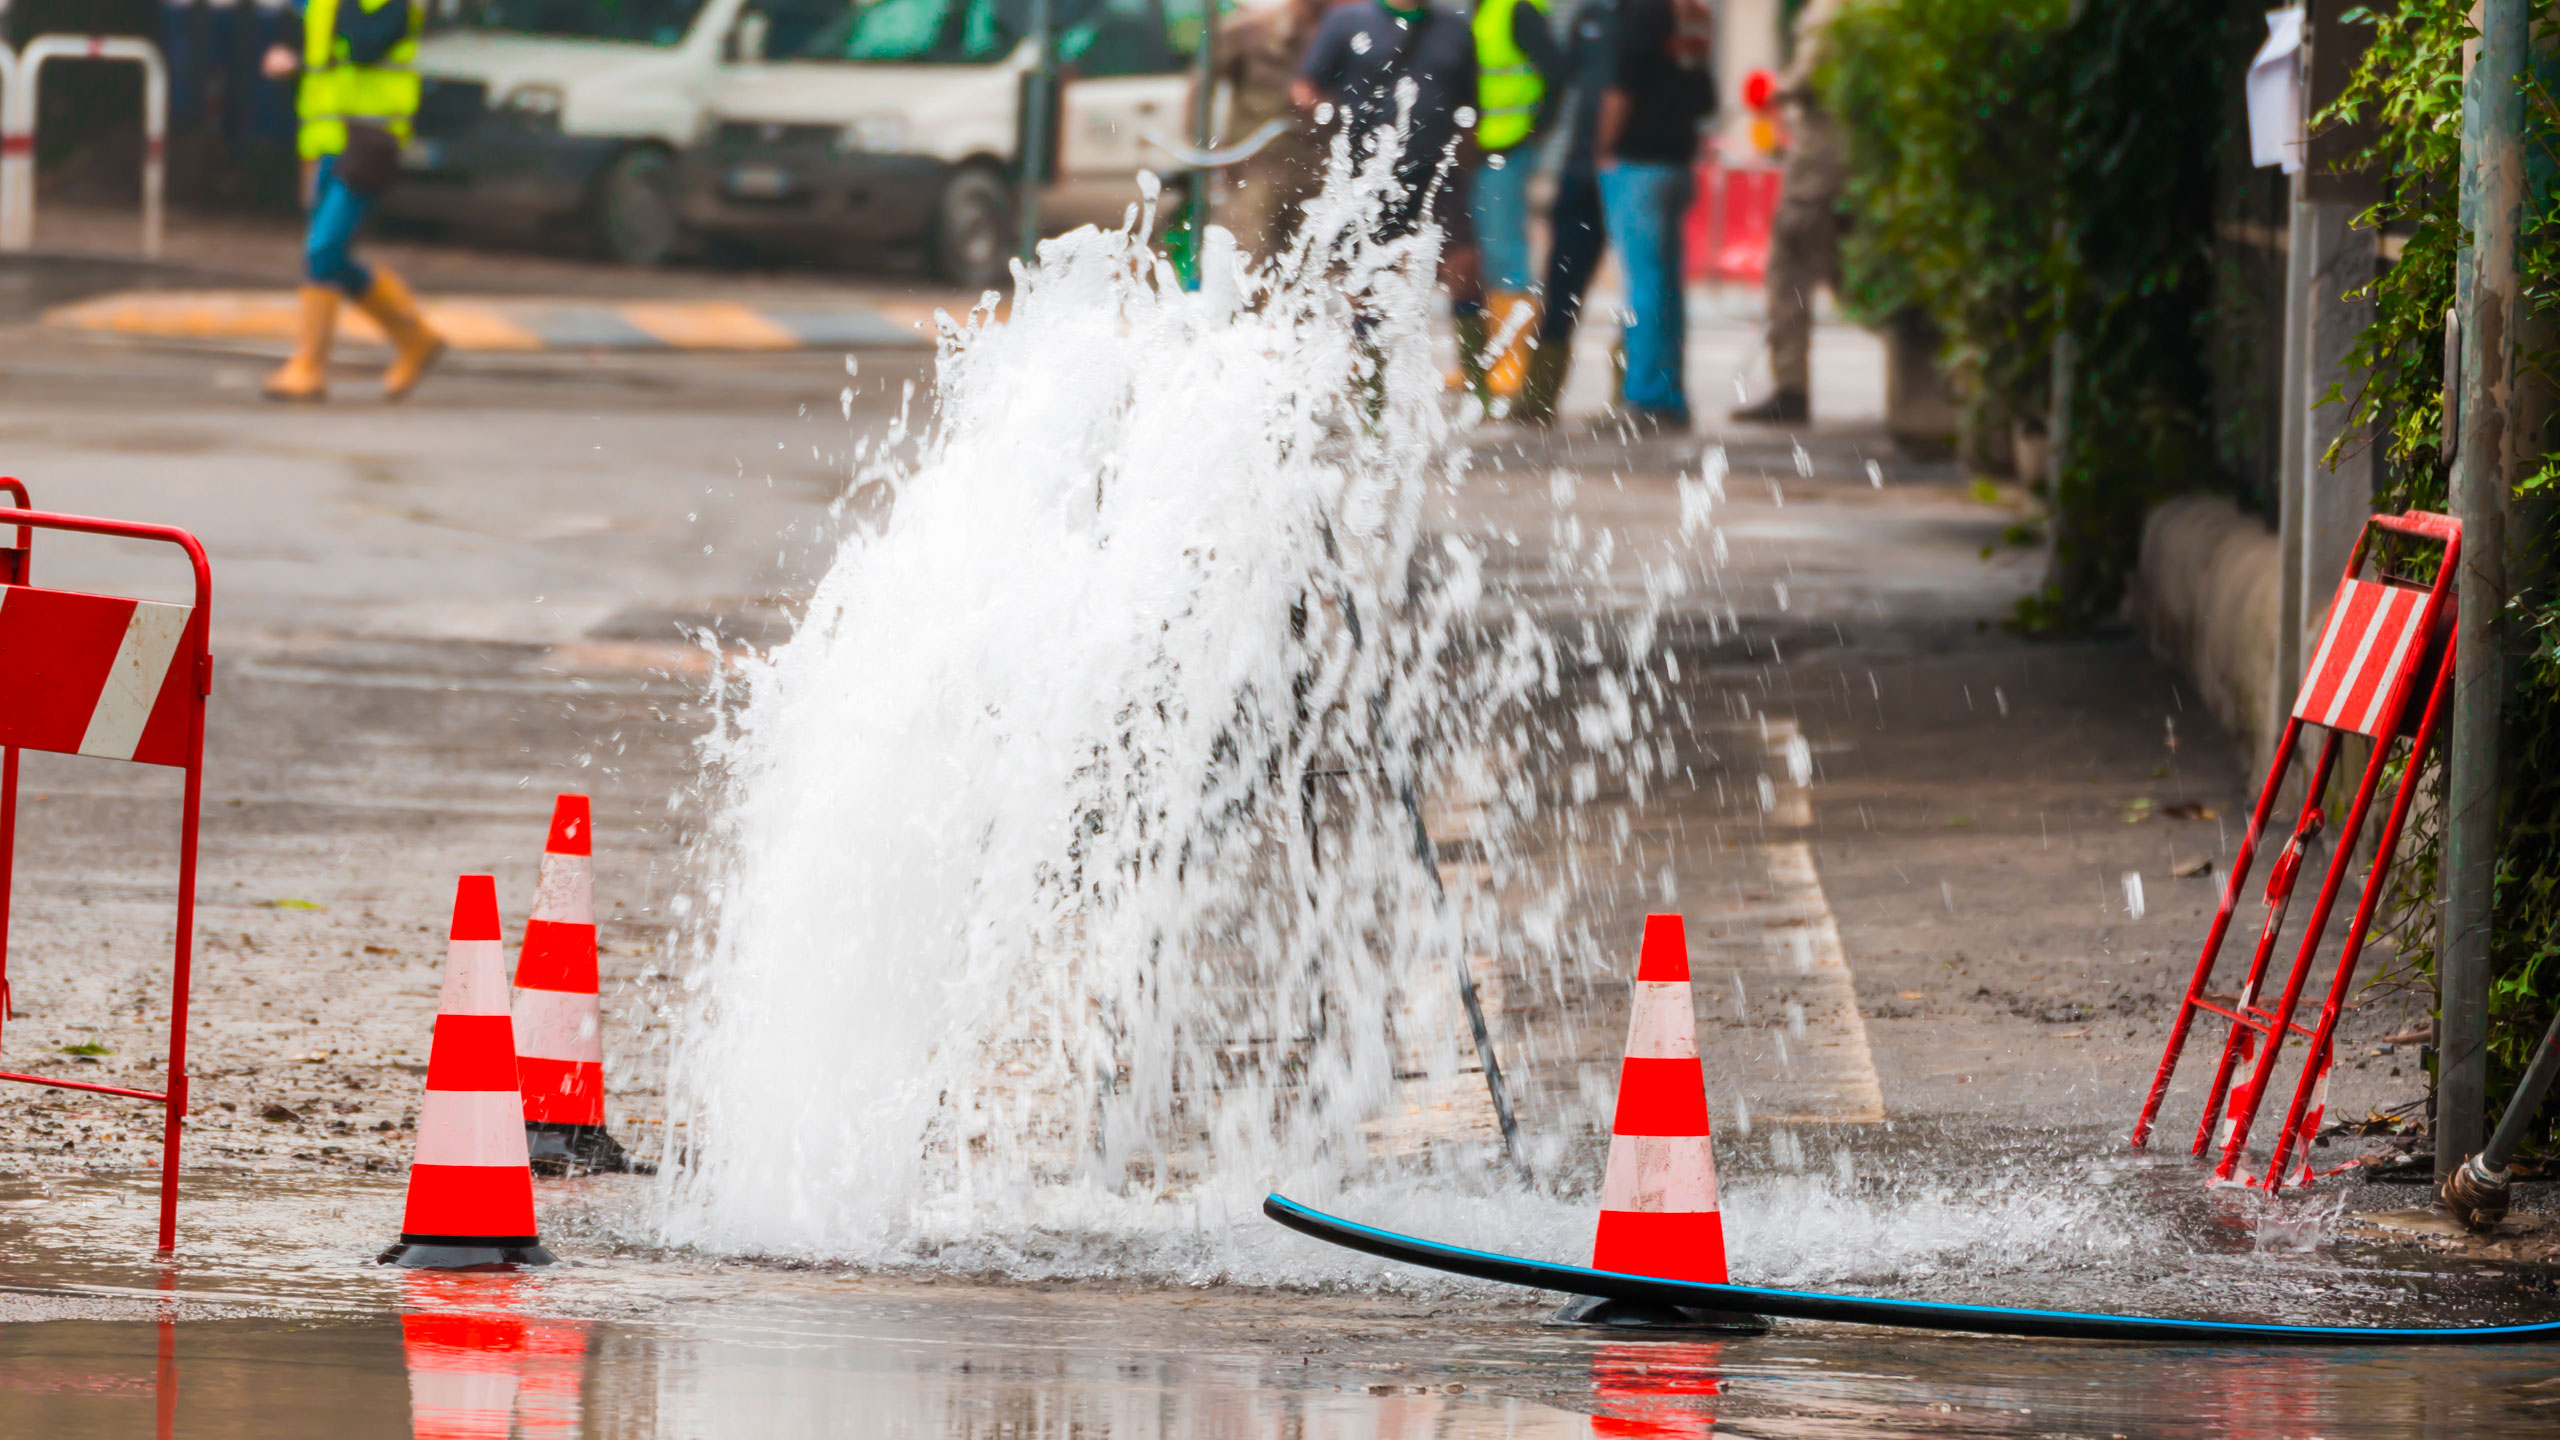 Water leakage in the streets